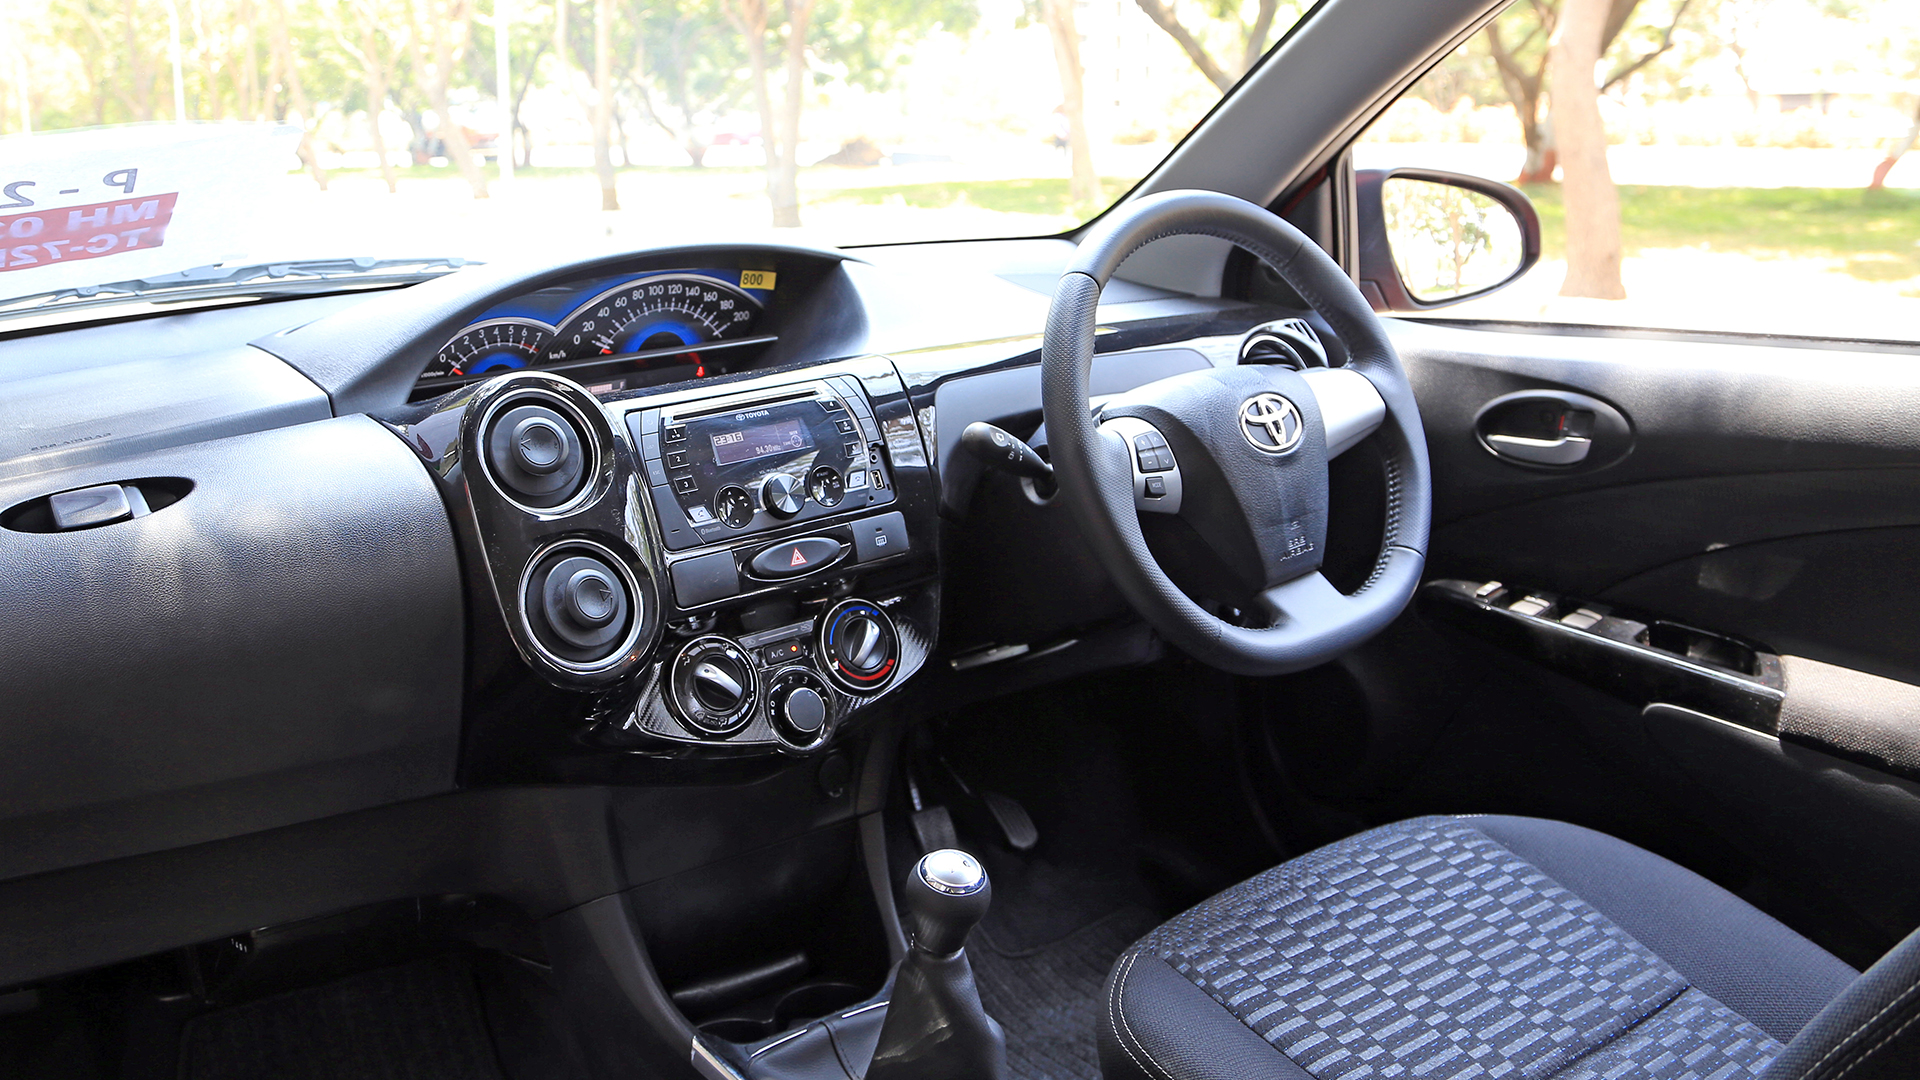 Toyota-Etios-Cross-2014 Interior Car Photos - Overdrive